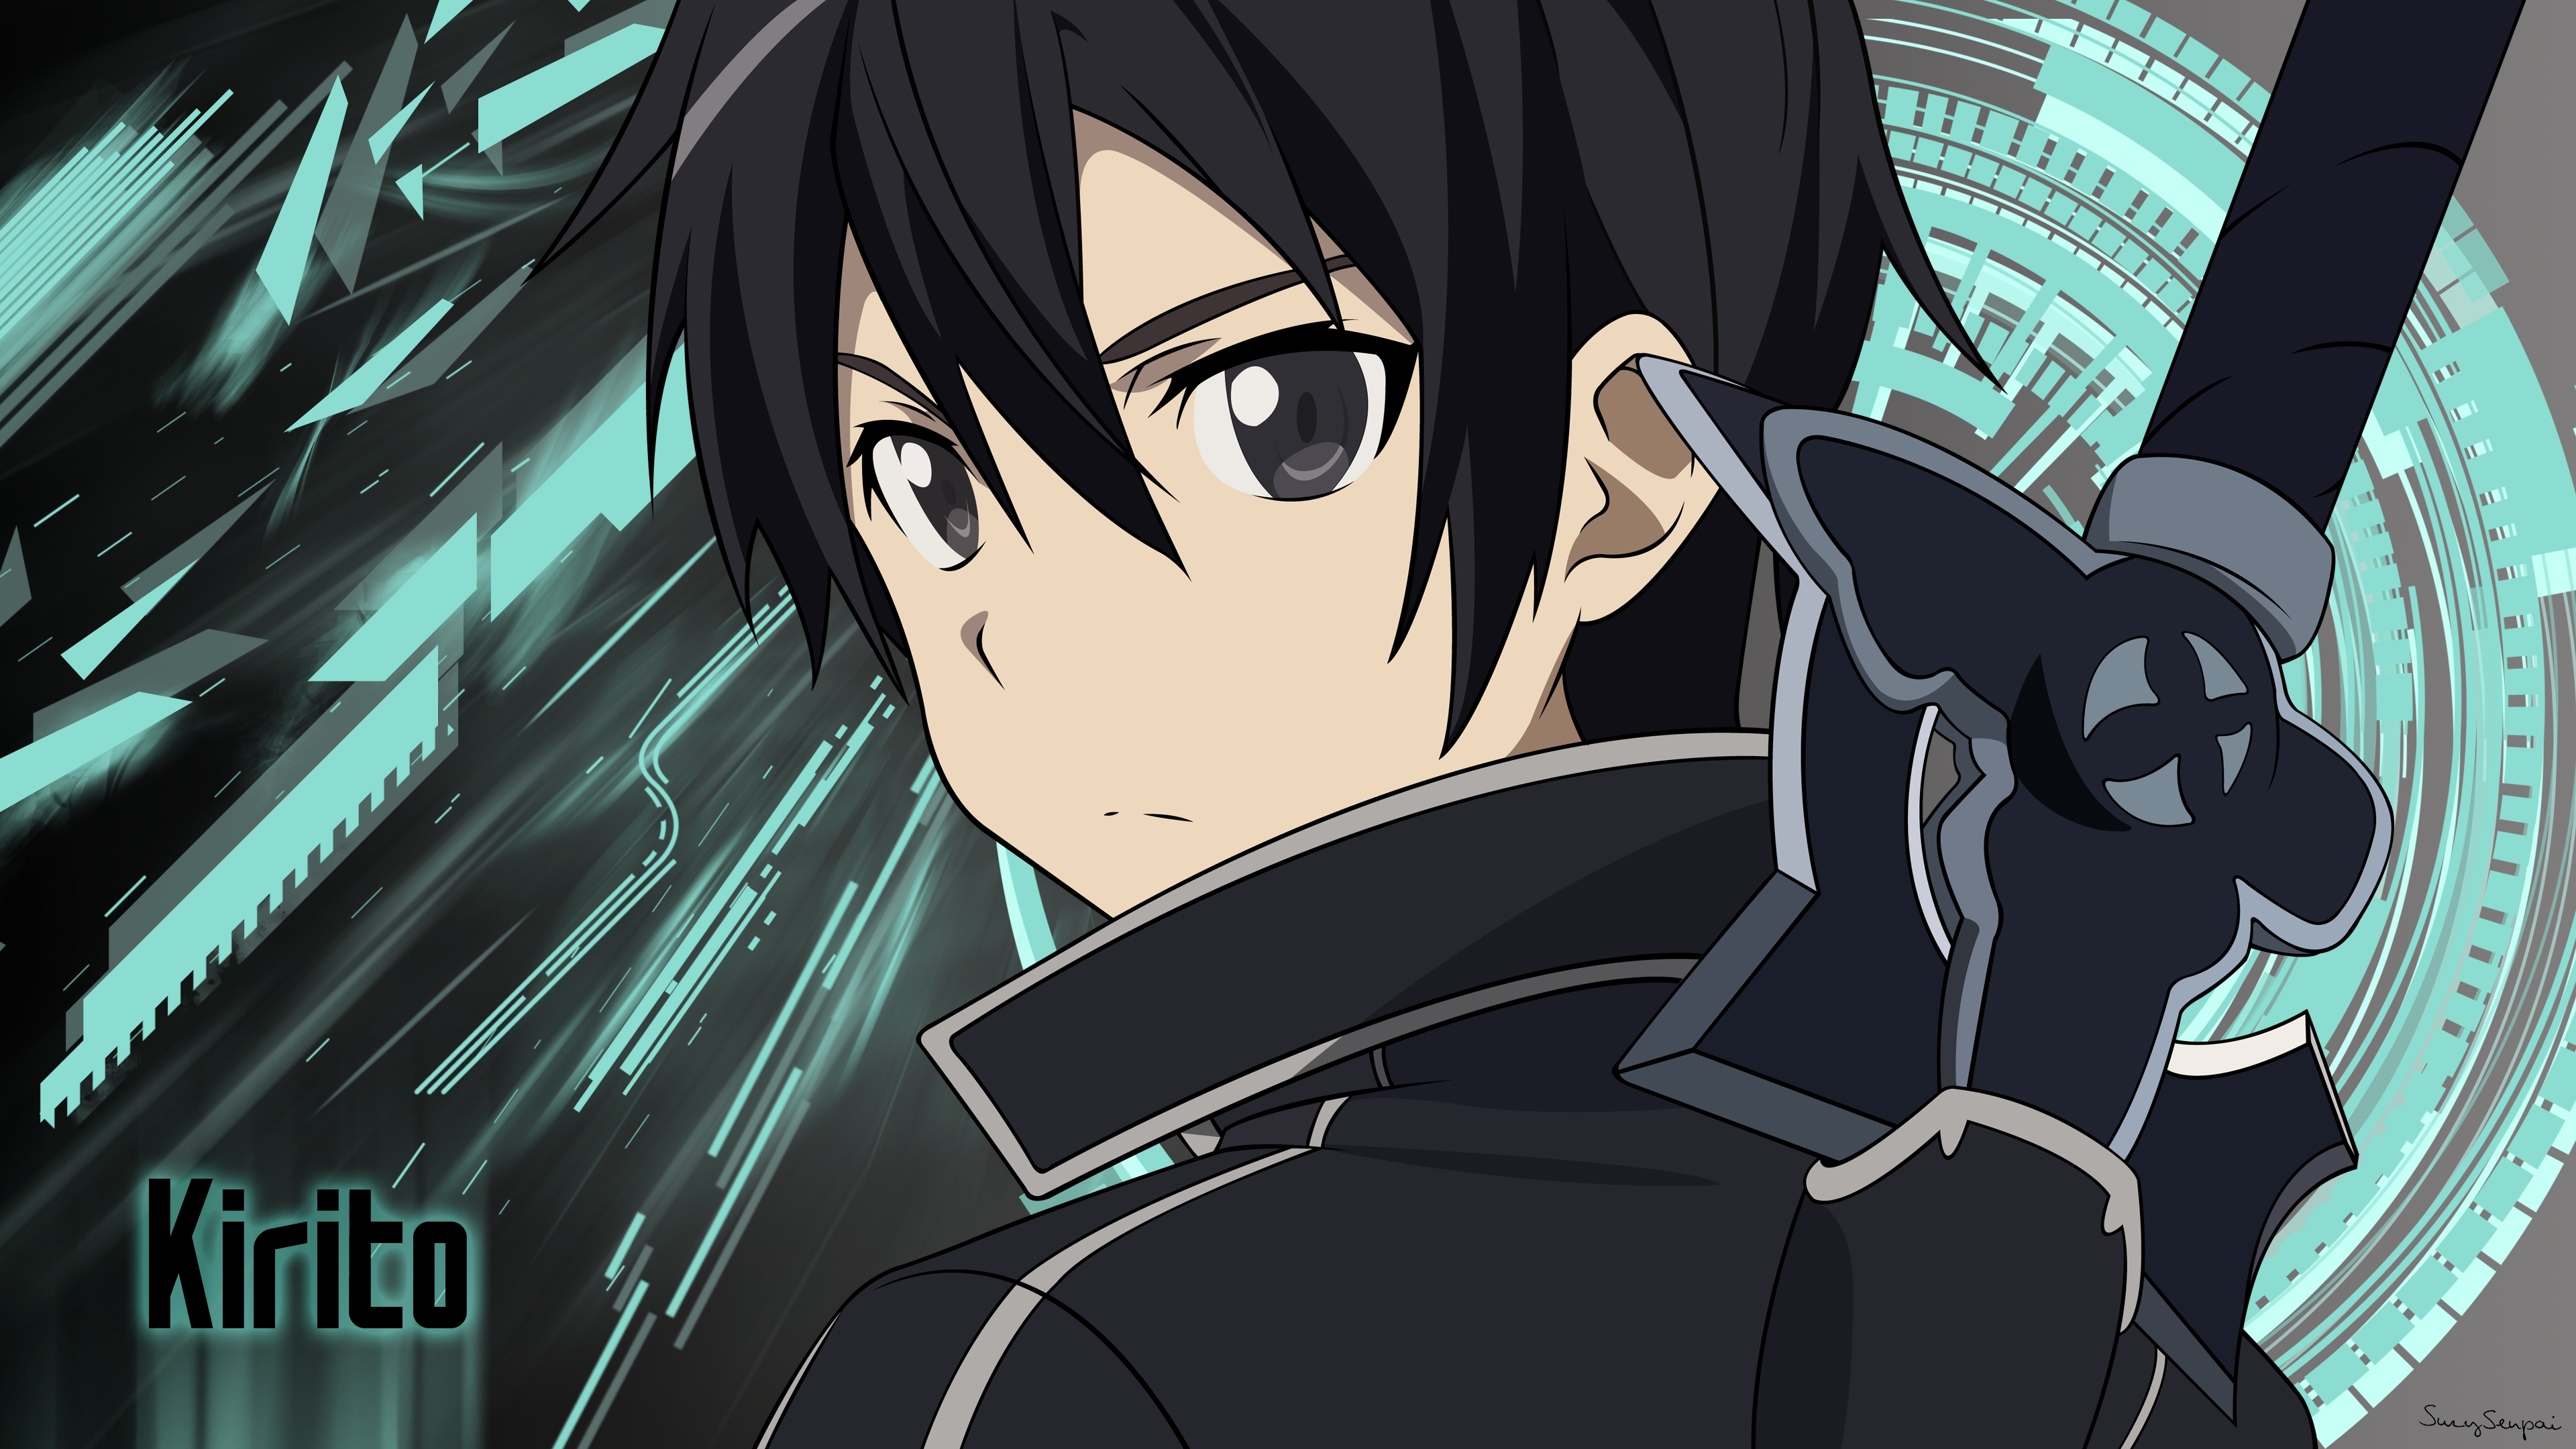 Kirito Sword Art Online Anime Wallpaper 4k Ultra Hd Id3074